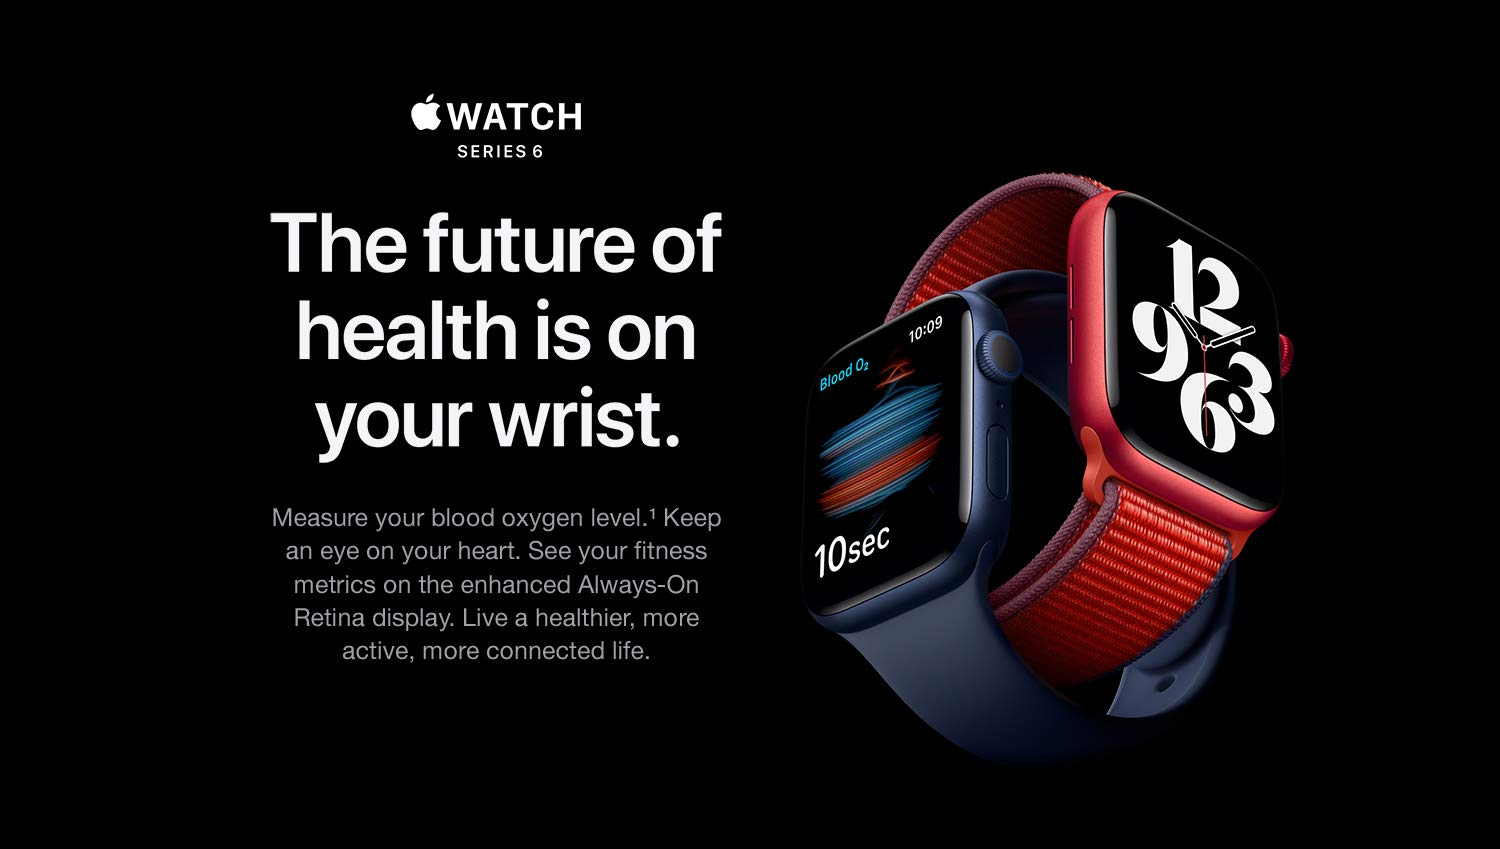 Watch Series 6. The future of health is on your wrist.